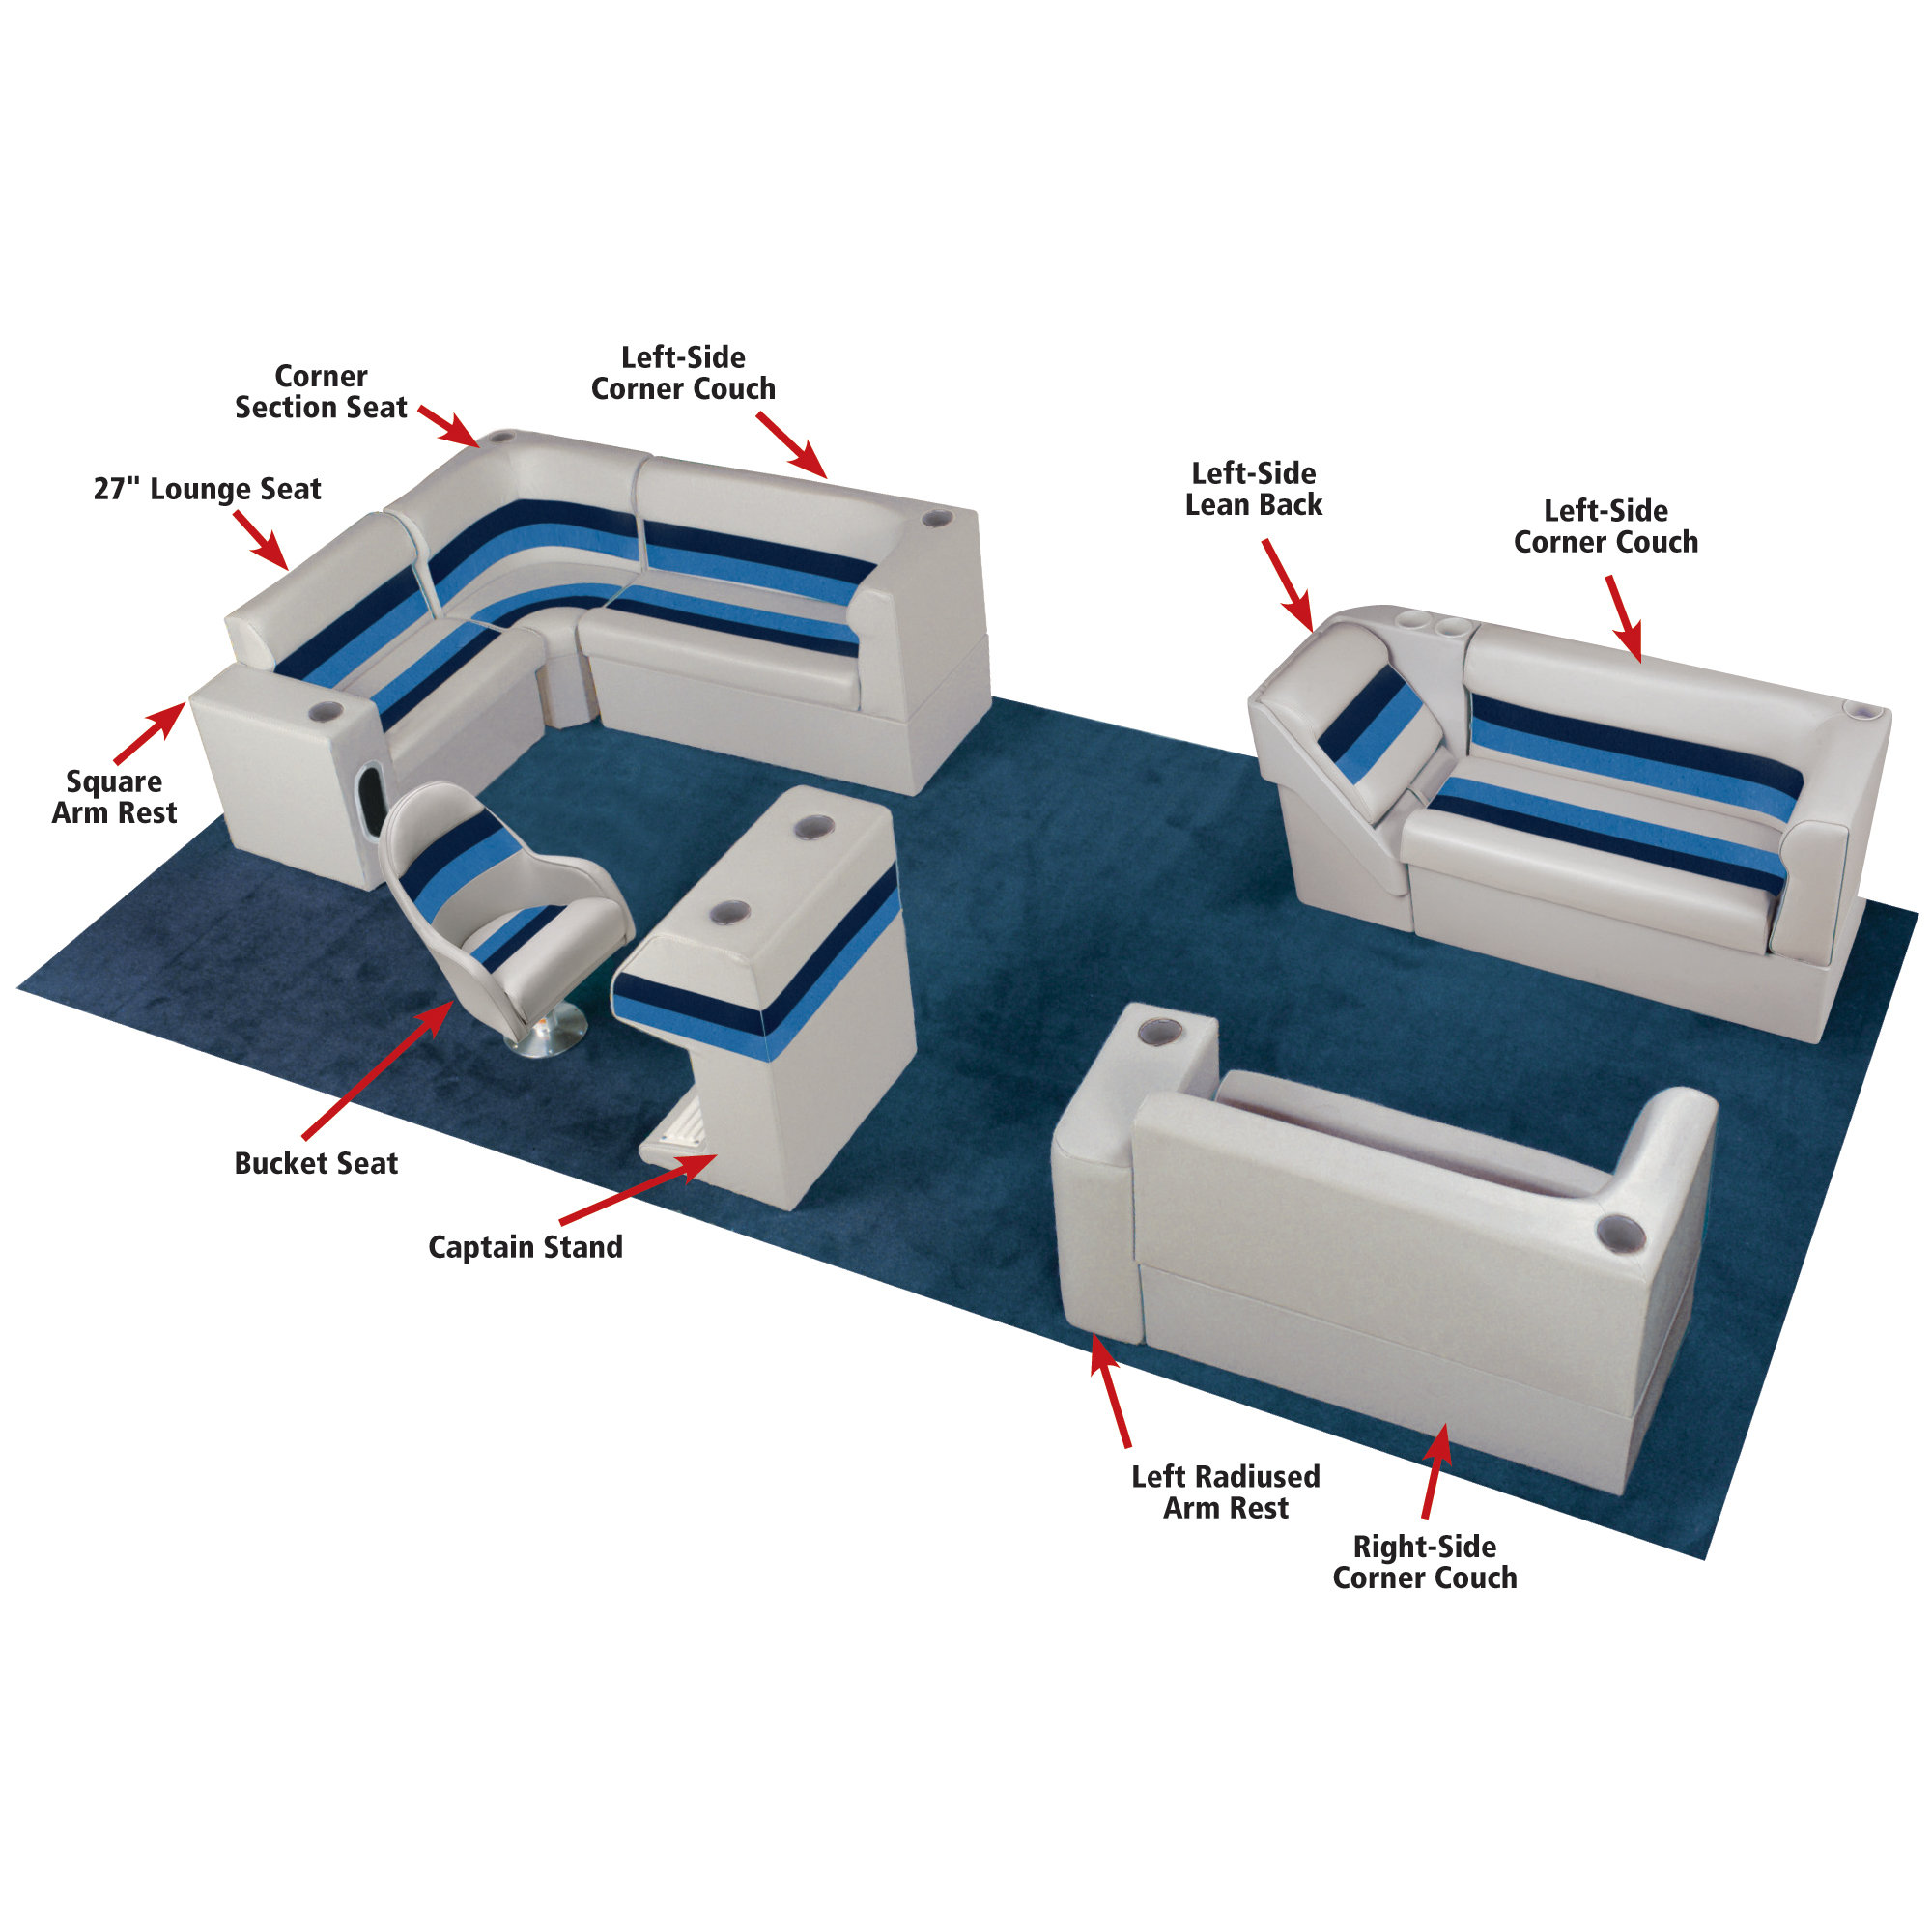 Toonmate Deluxe Pontoon Corner Couch w/Classic Base(no toe kick) Left Side White